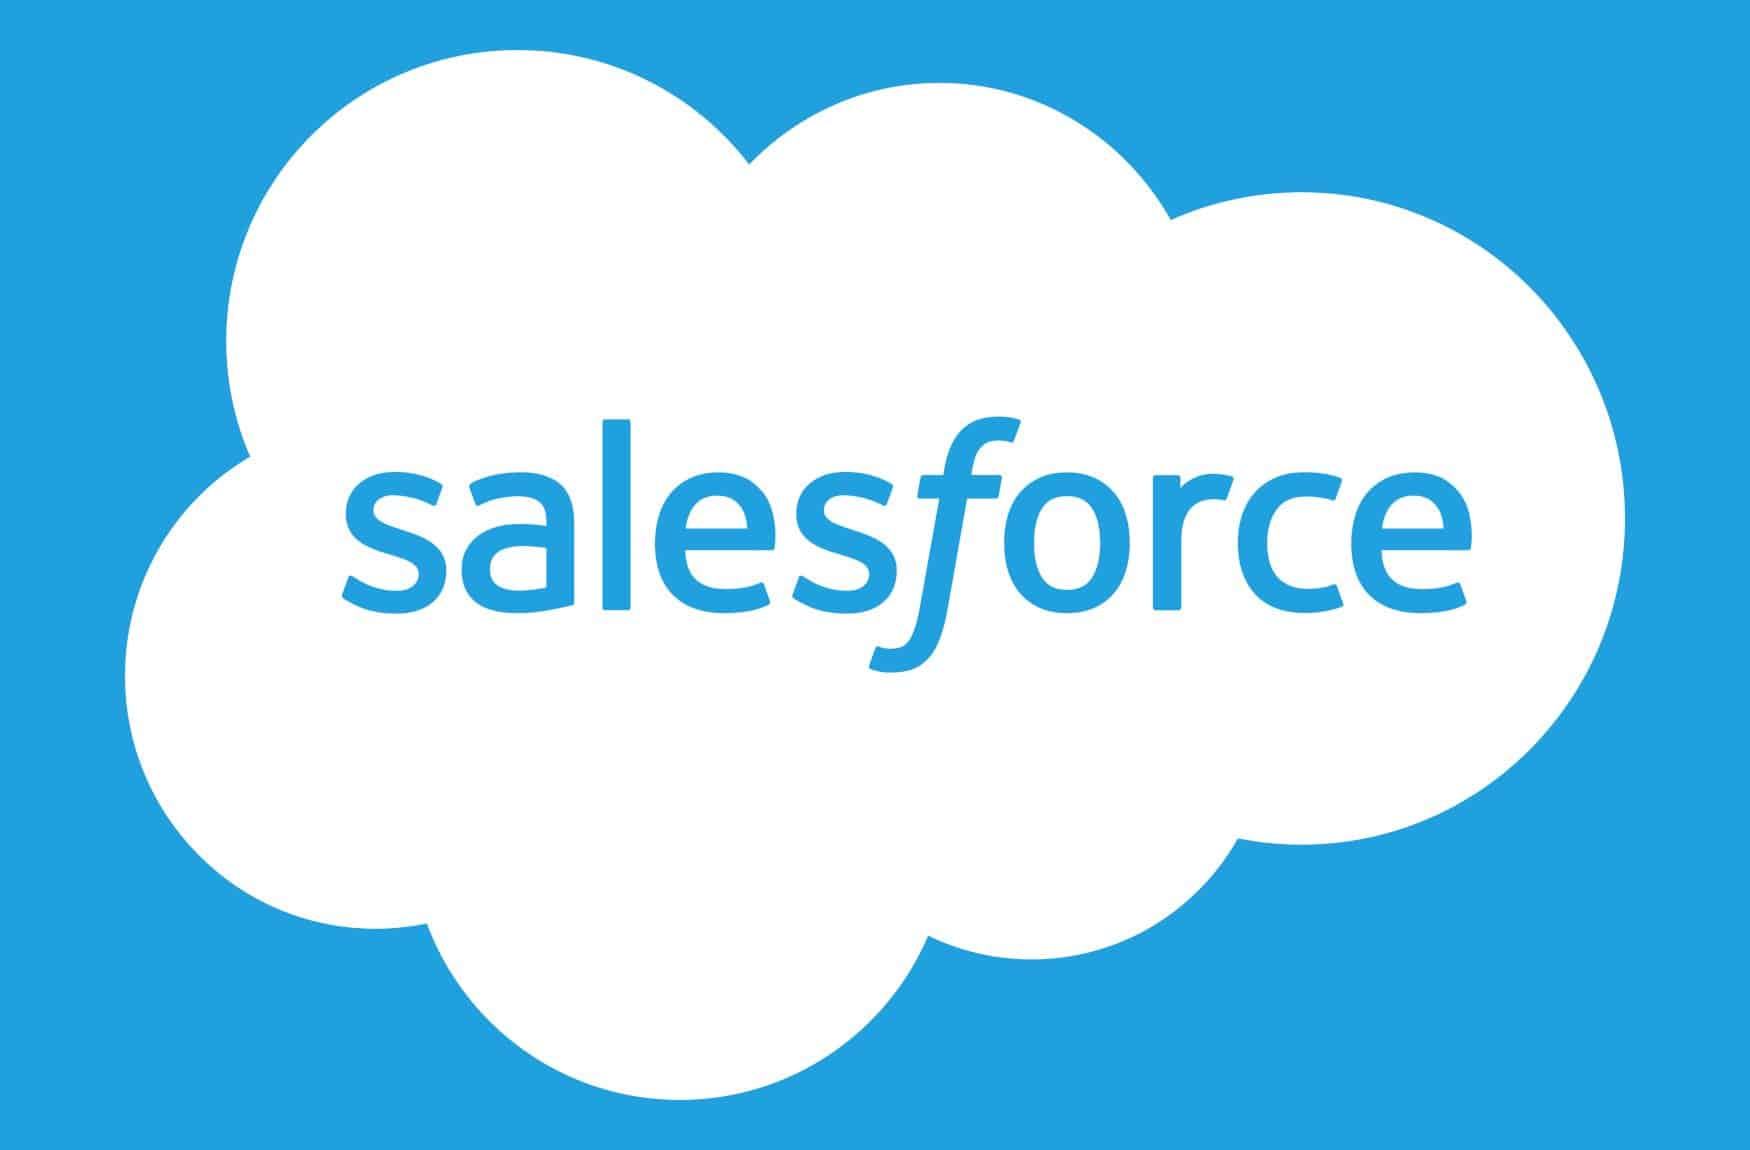 Salesforce terms India as a top priority market and promises to continue its investment in the ecosystem